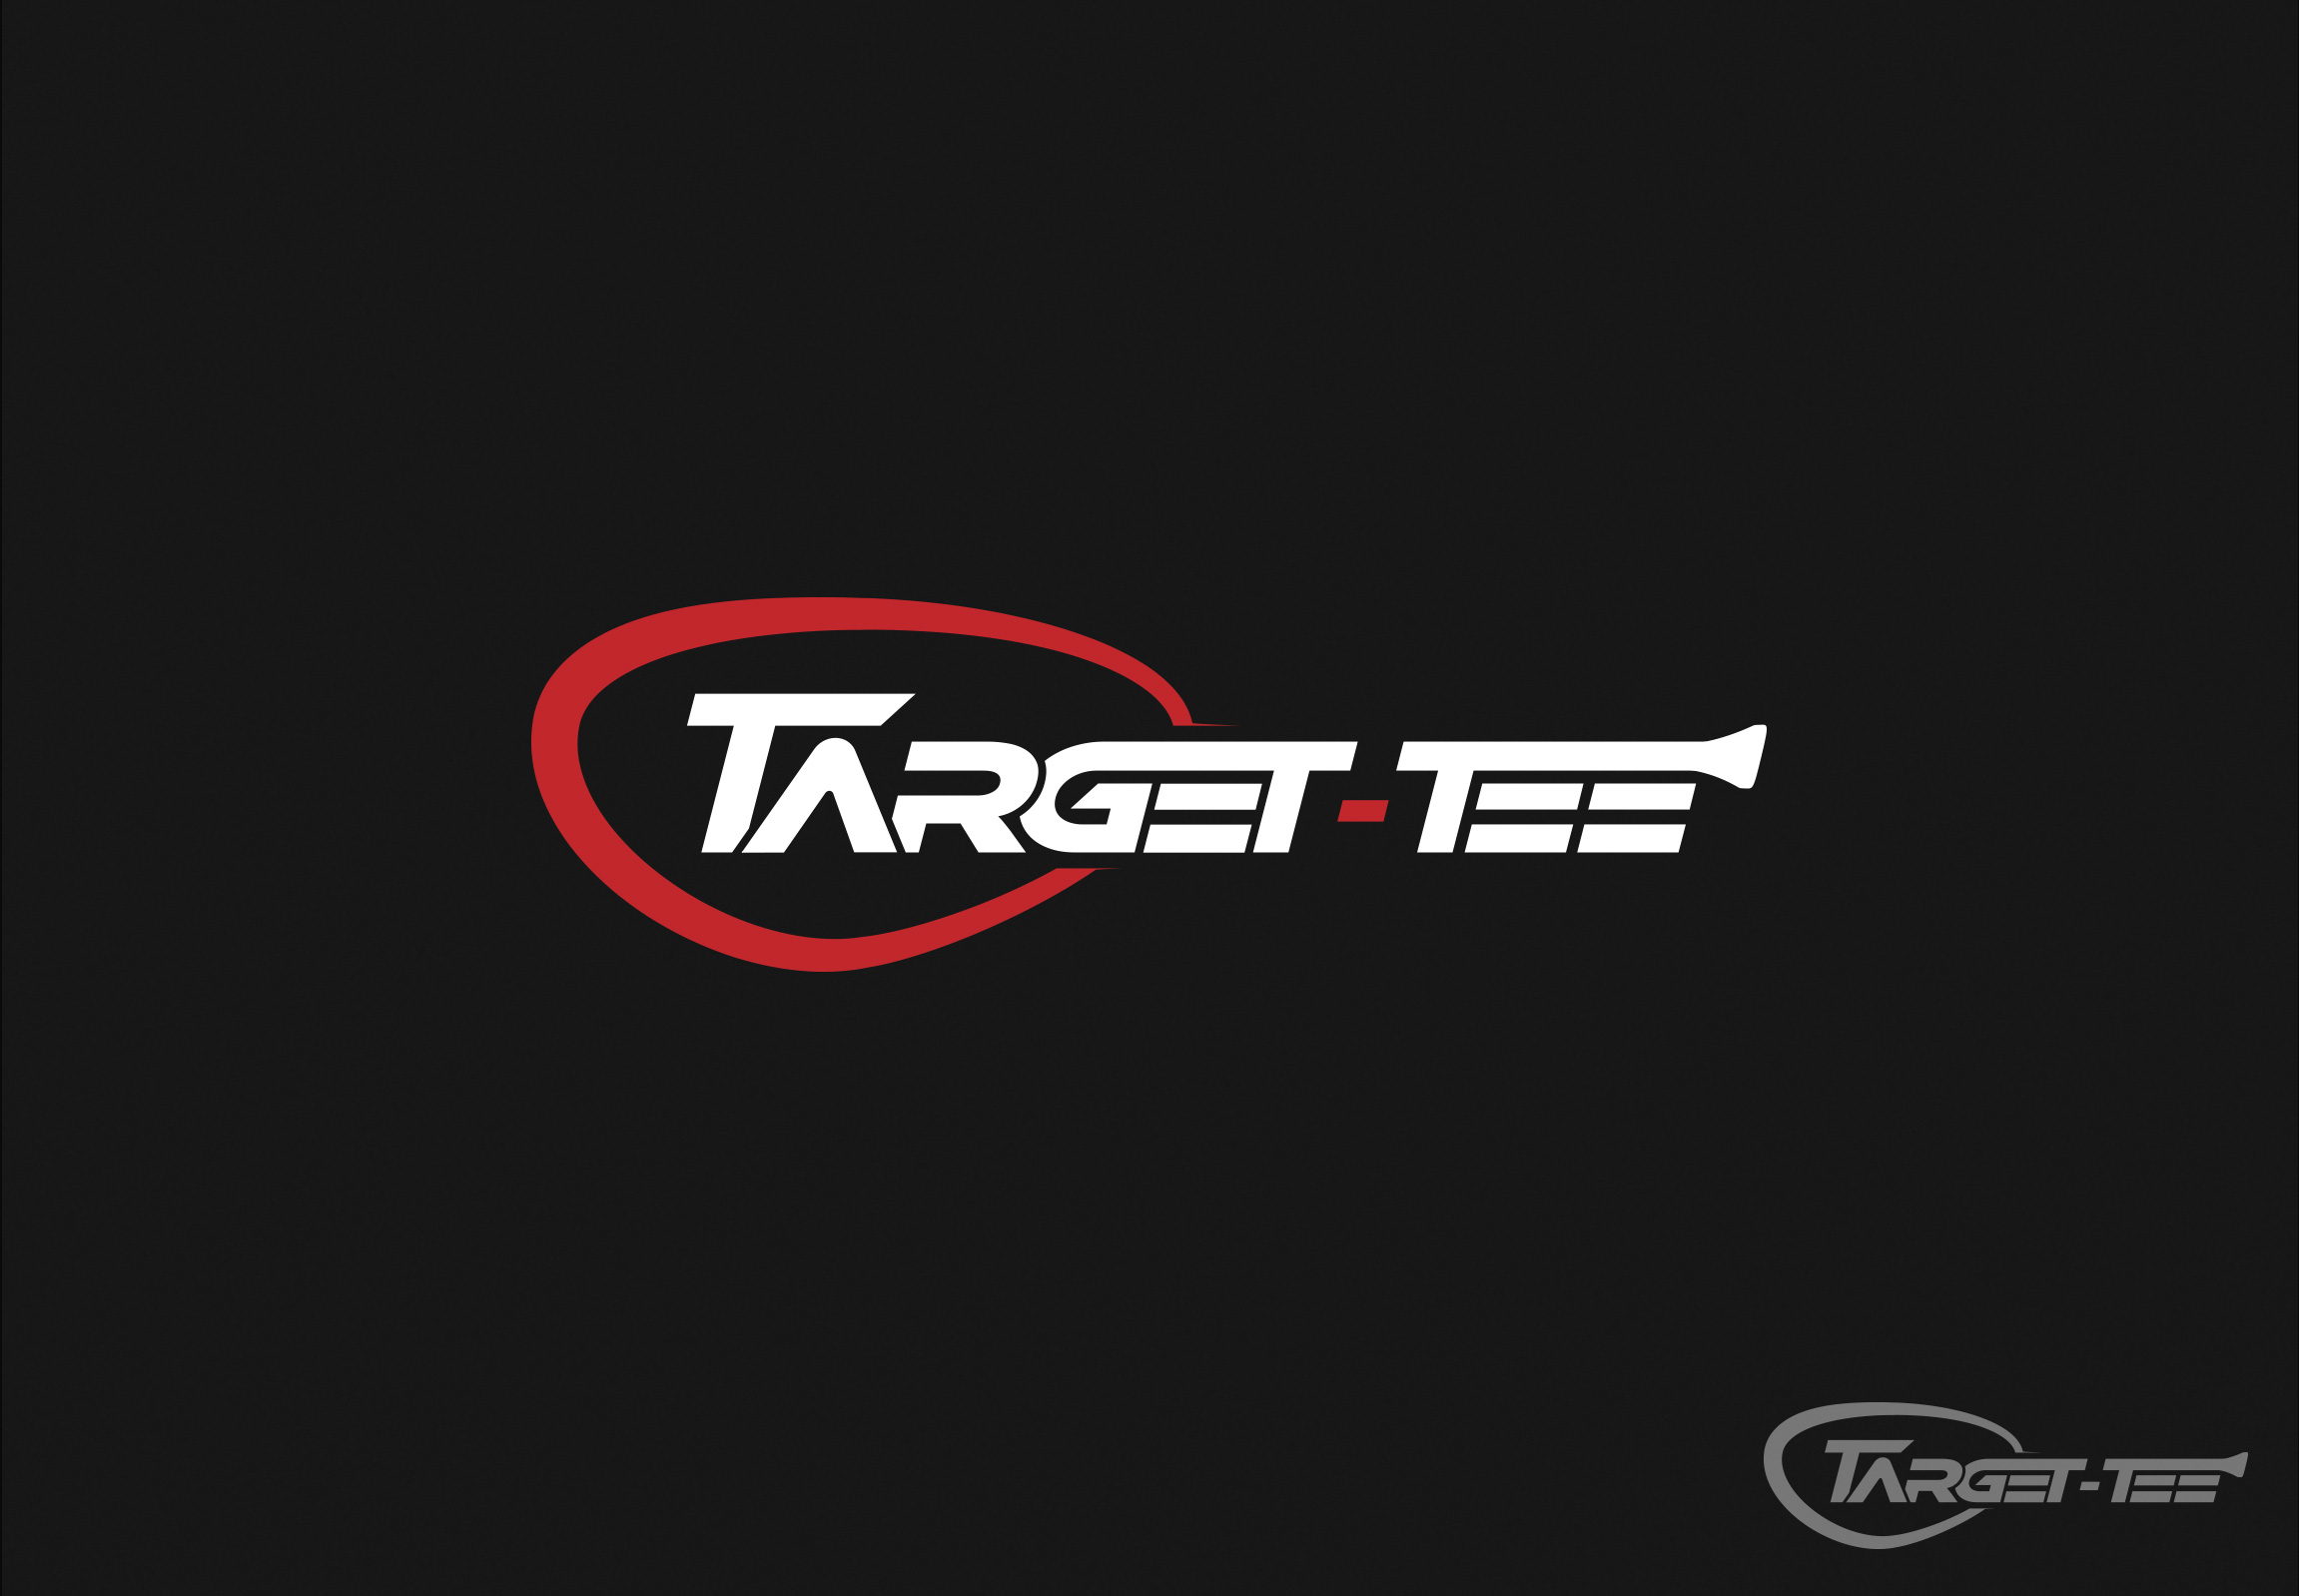 Logo Design by olii - Entry No. 110 in the Logo Design Contest Imaginative Logo Design for TARGET-TEE.